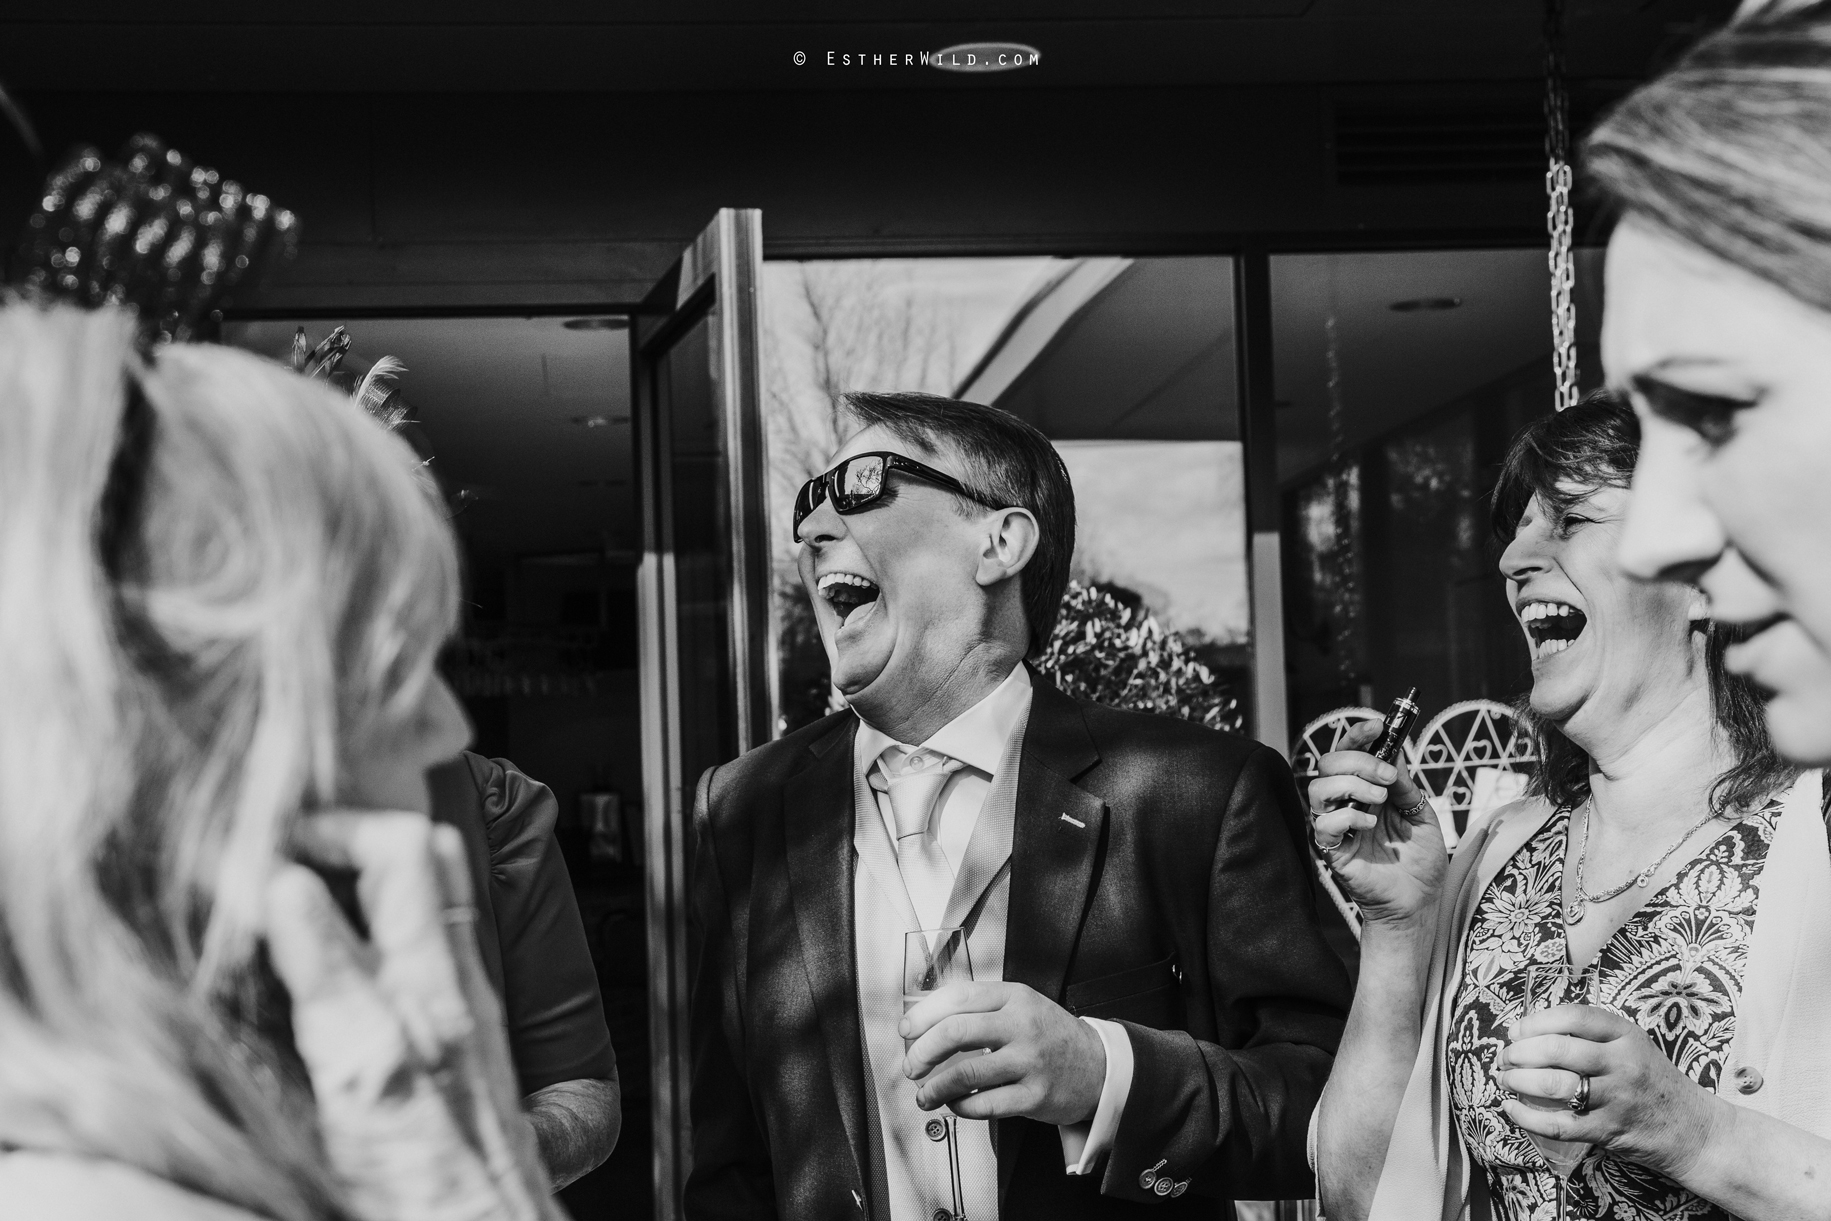 Norfolk_Mead_Hotel_Norwich_Wedding_Copyright_Esther_Wild_Photographer_IMG_1746-2.jpg